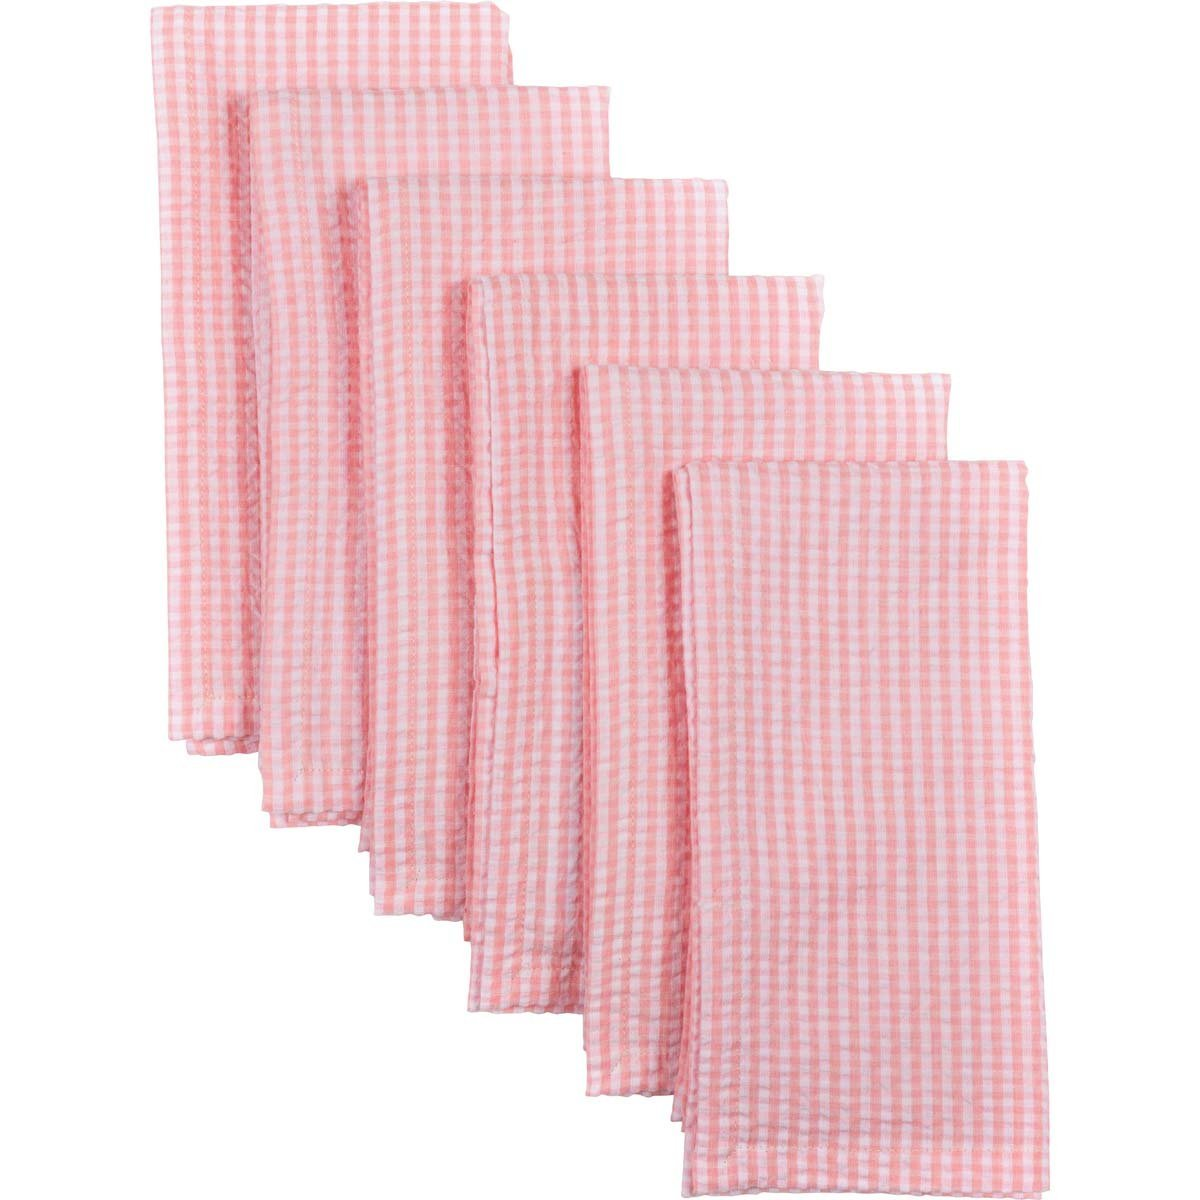 Keeley Napkin Set of 6